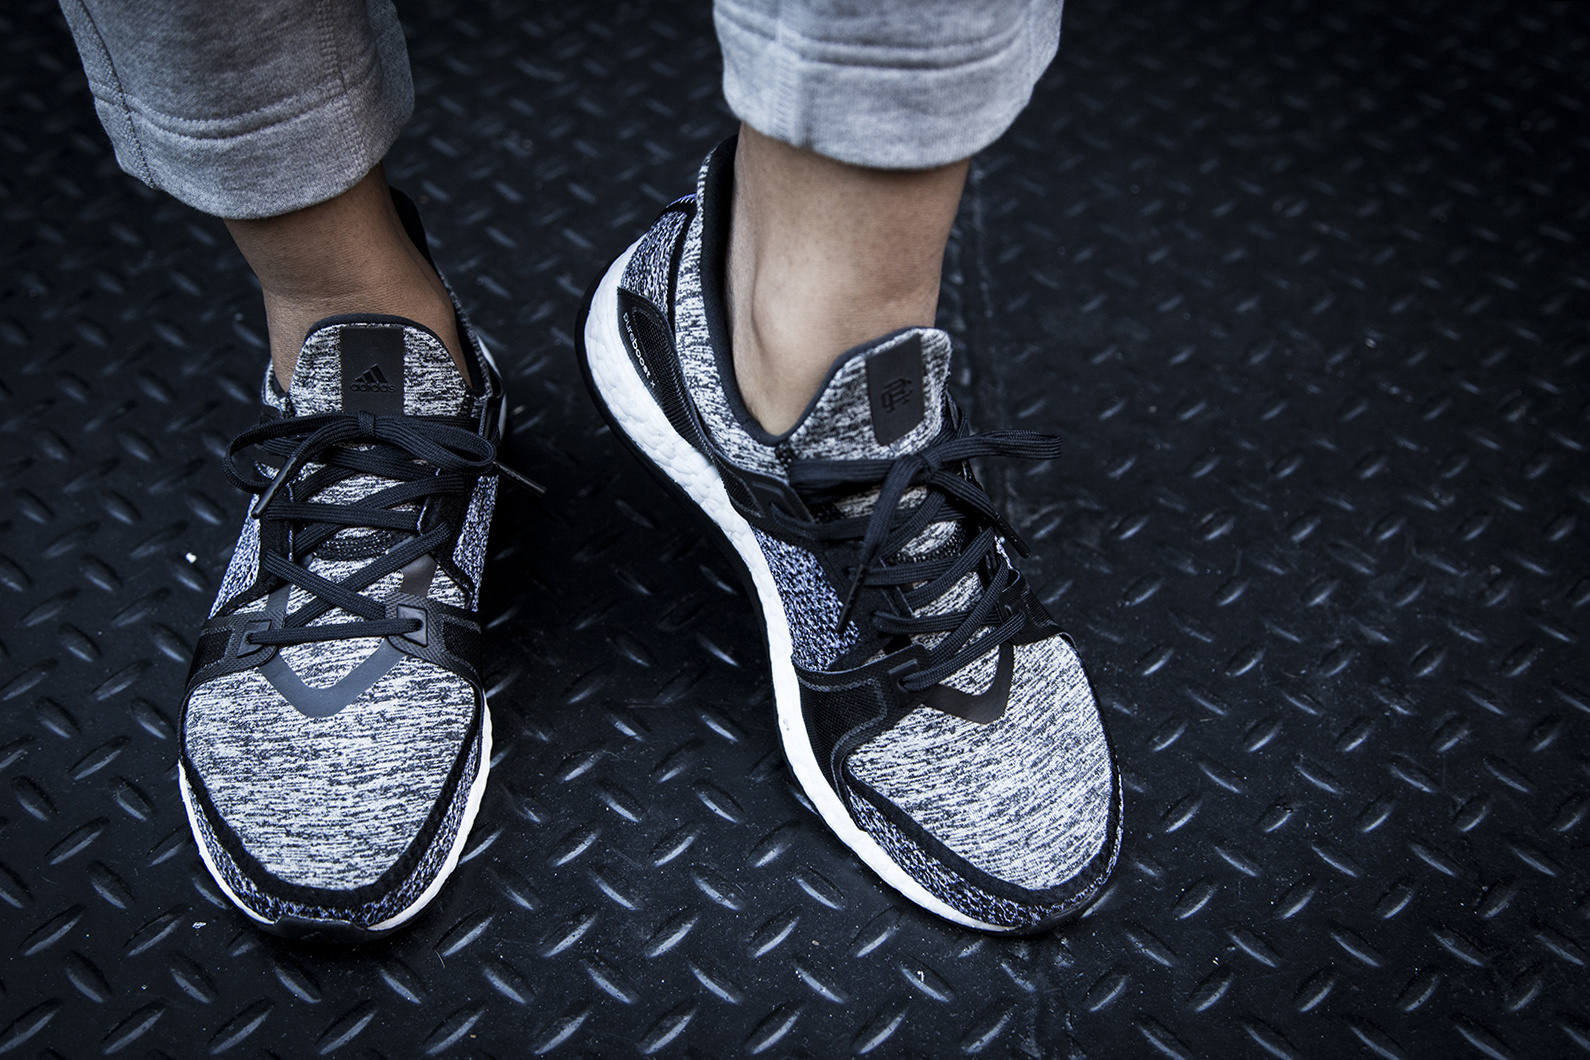 adidas-pure-boost-x-trainer-reigning-champ-release-20161129